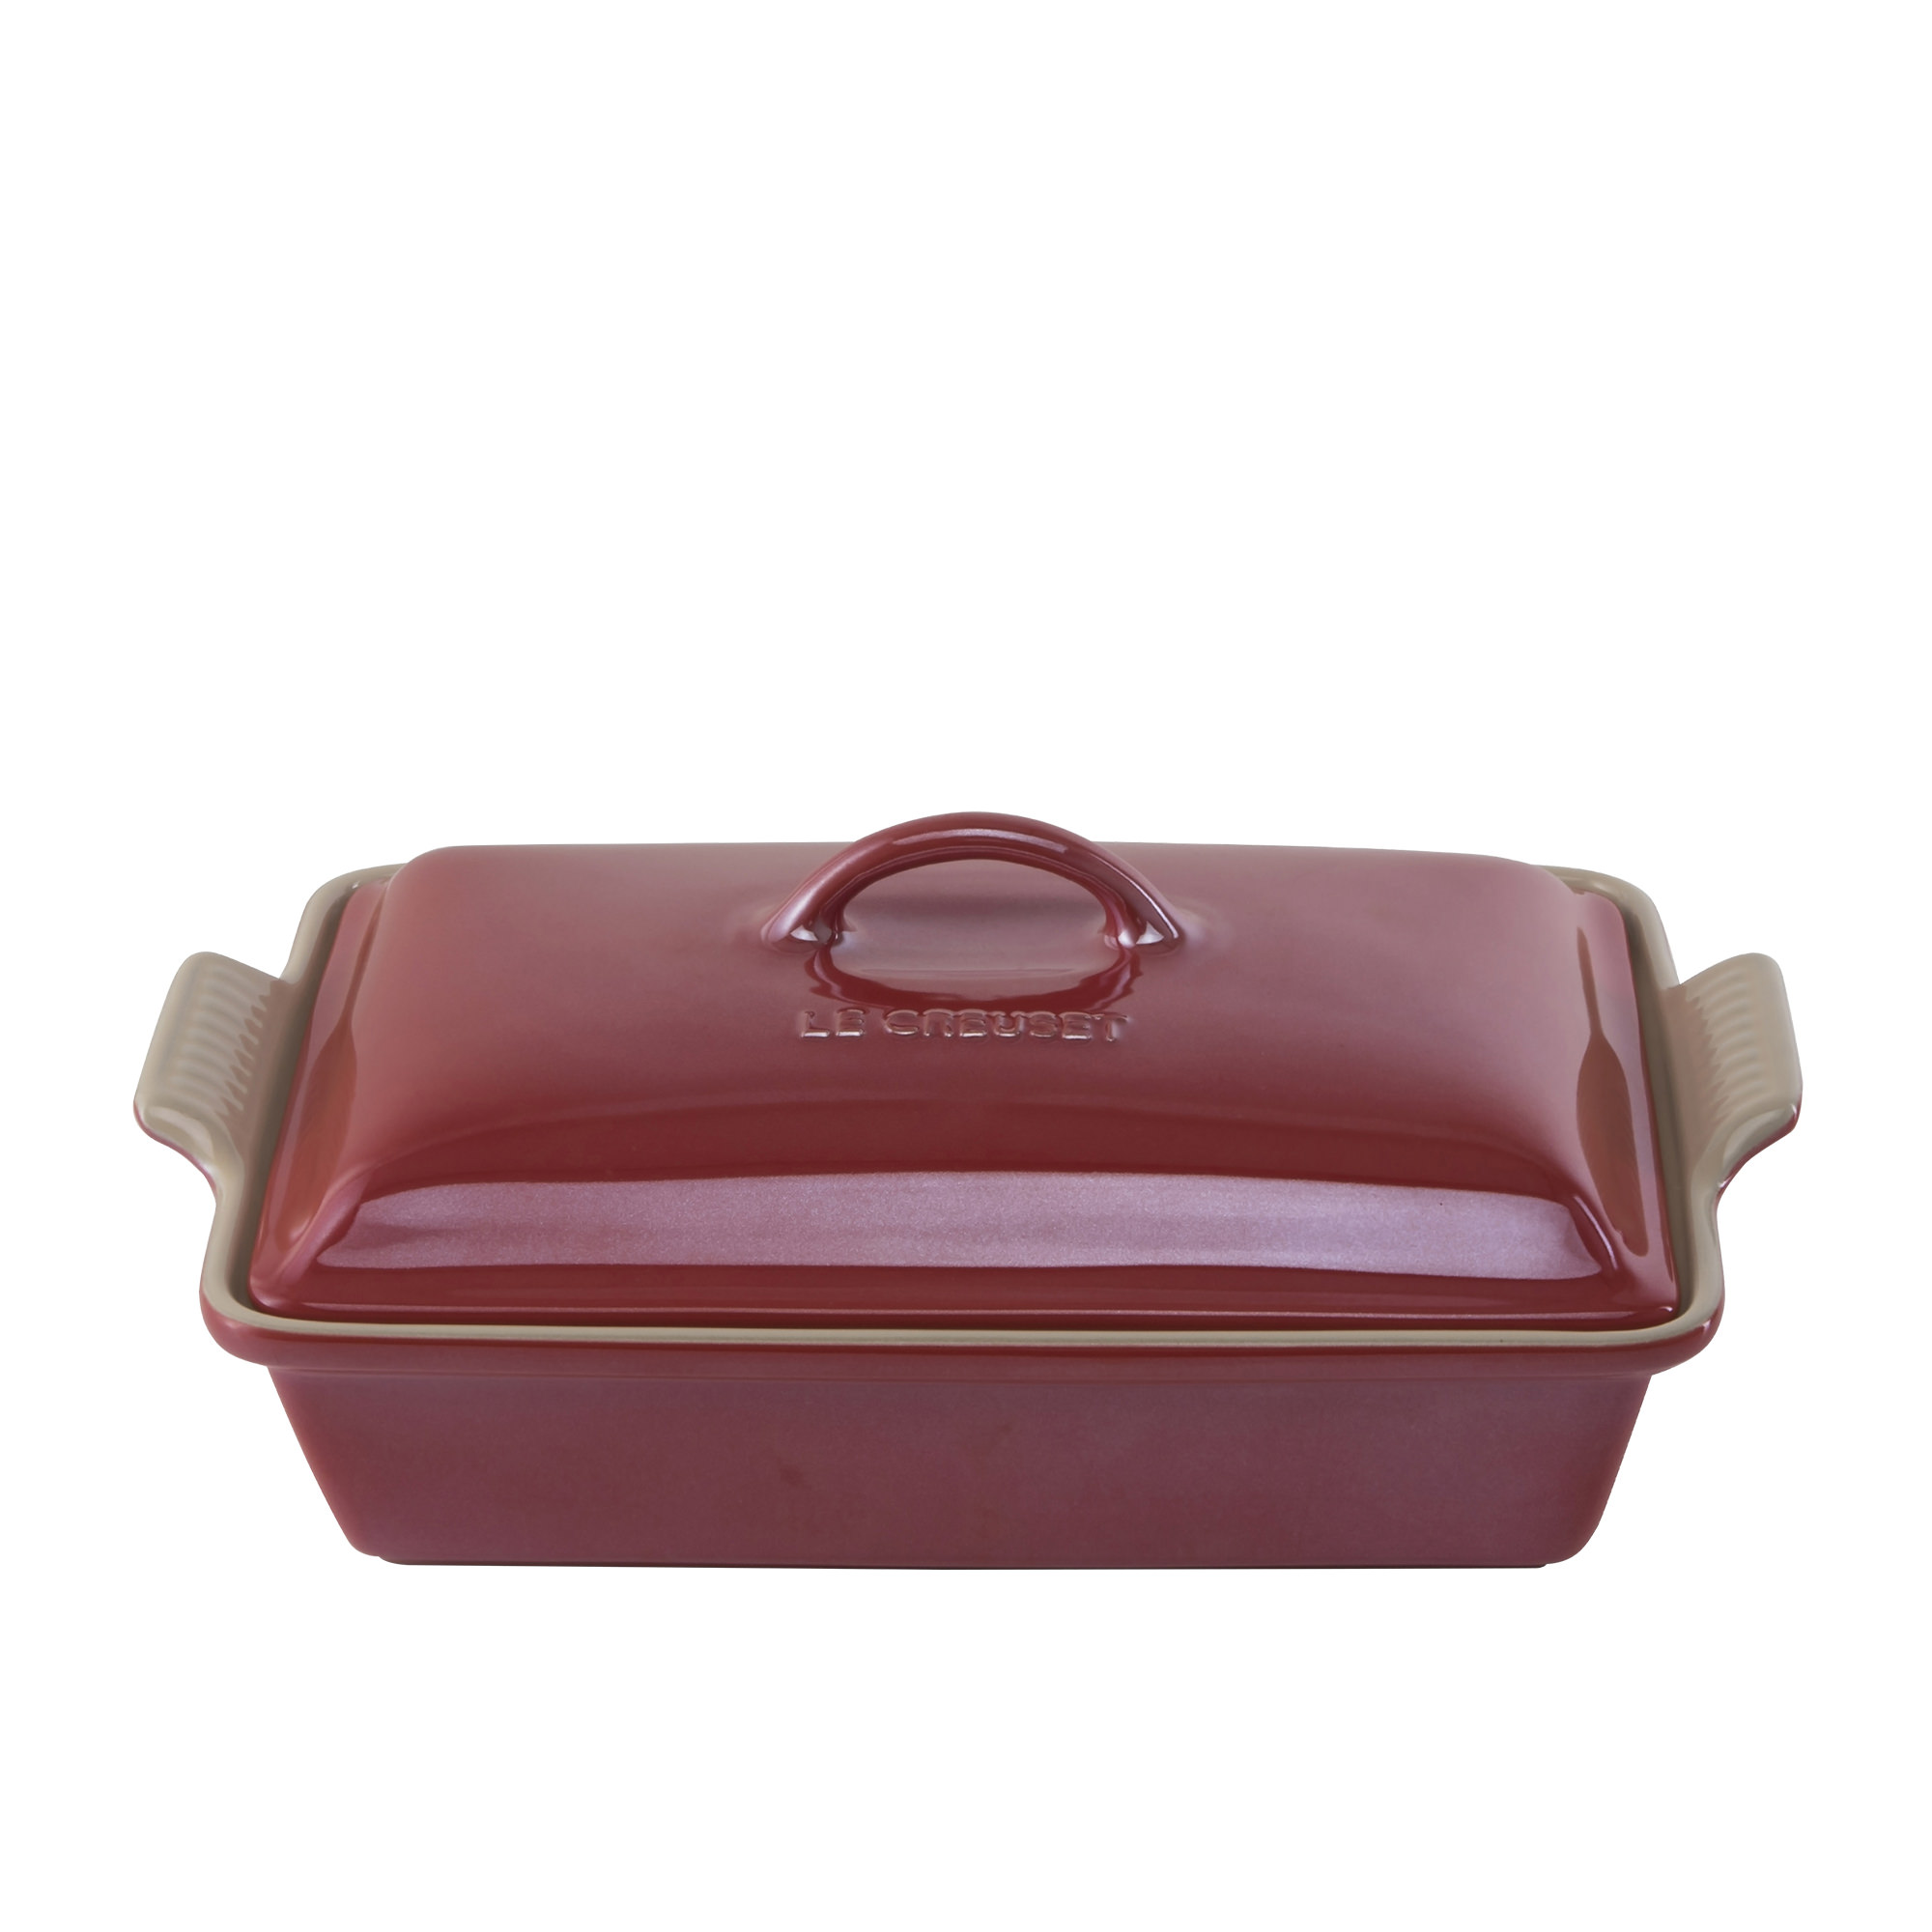 Le Creuset Stoneware Heritage Covered Rectangular Dish 33cm Metallic Cerise